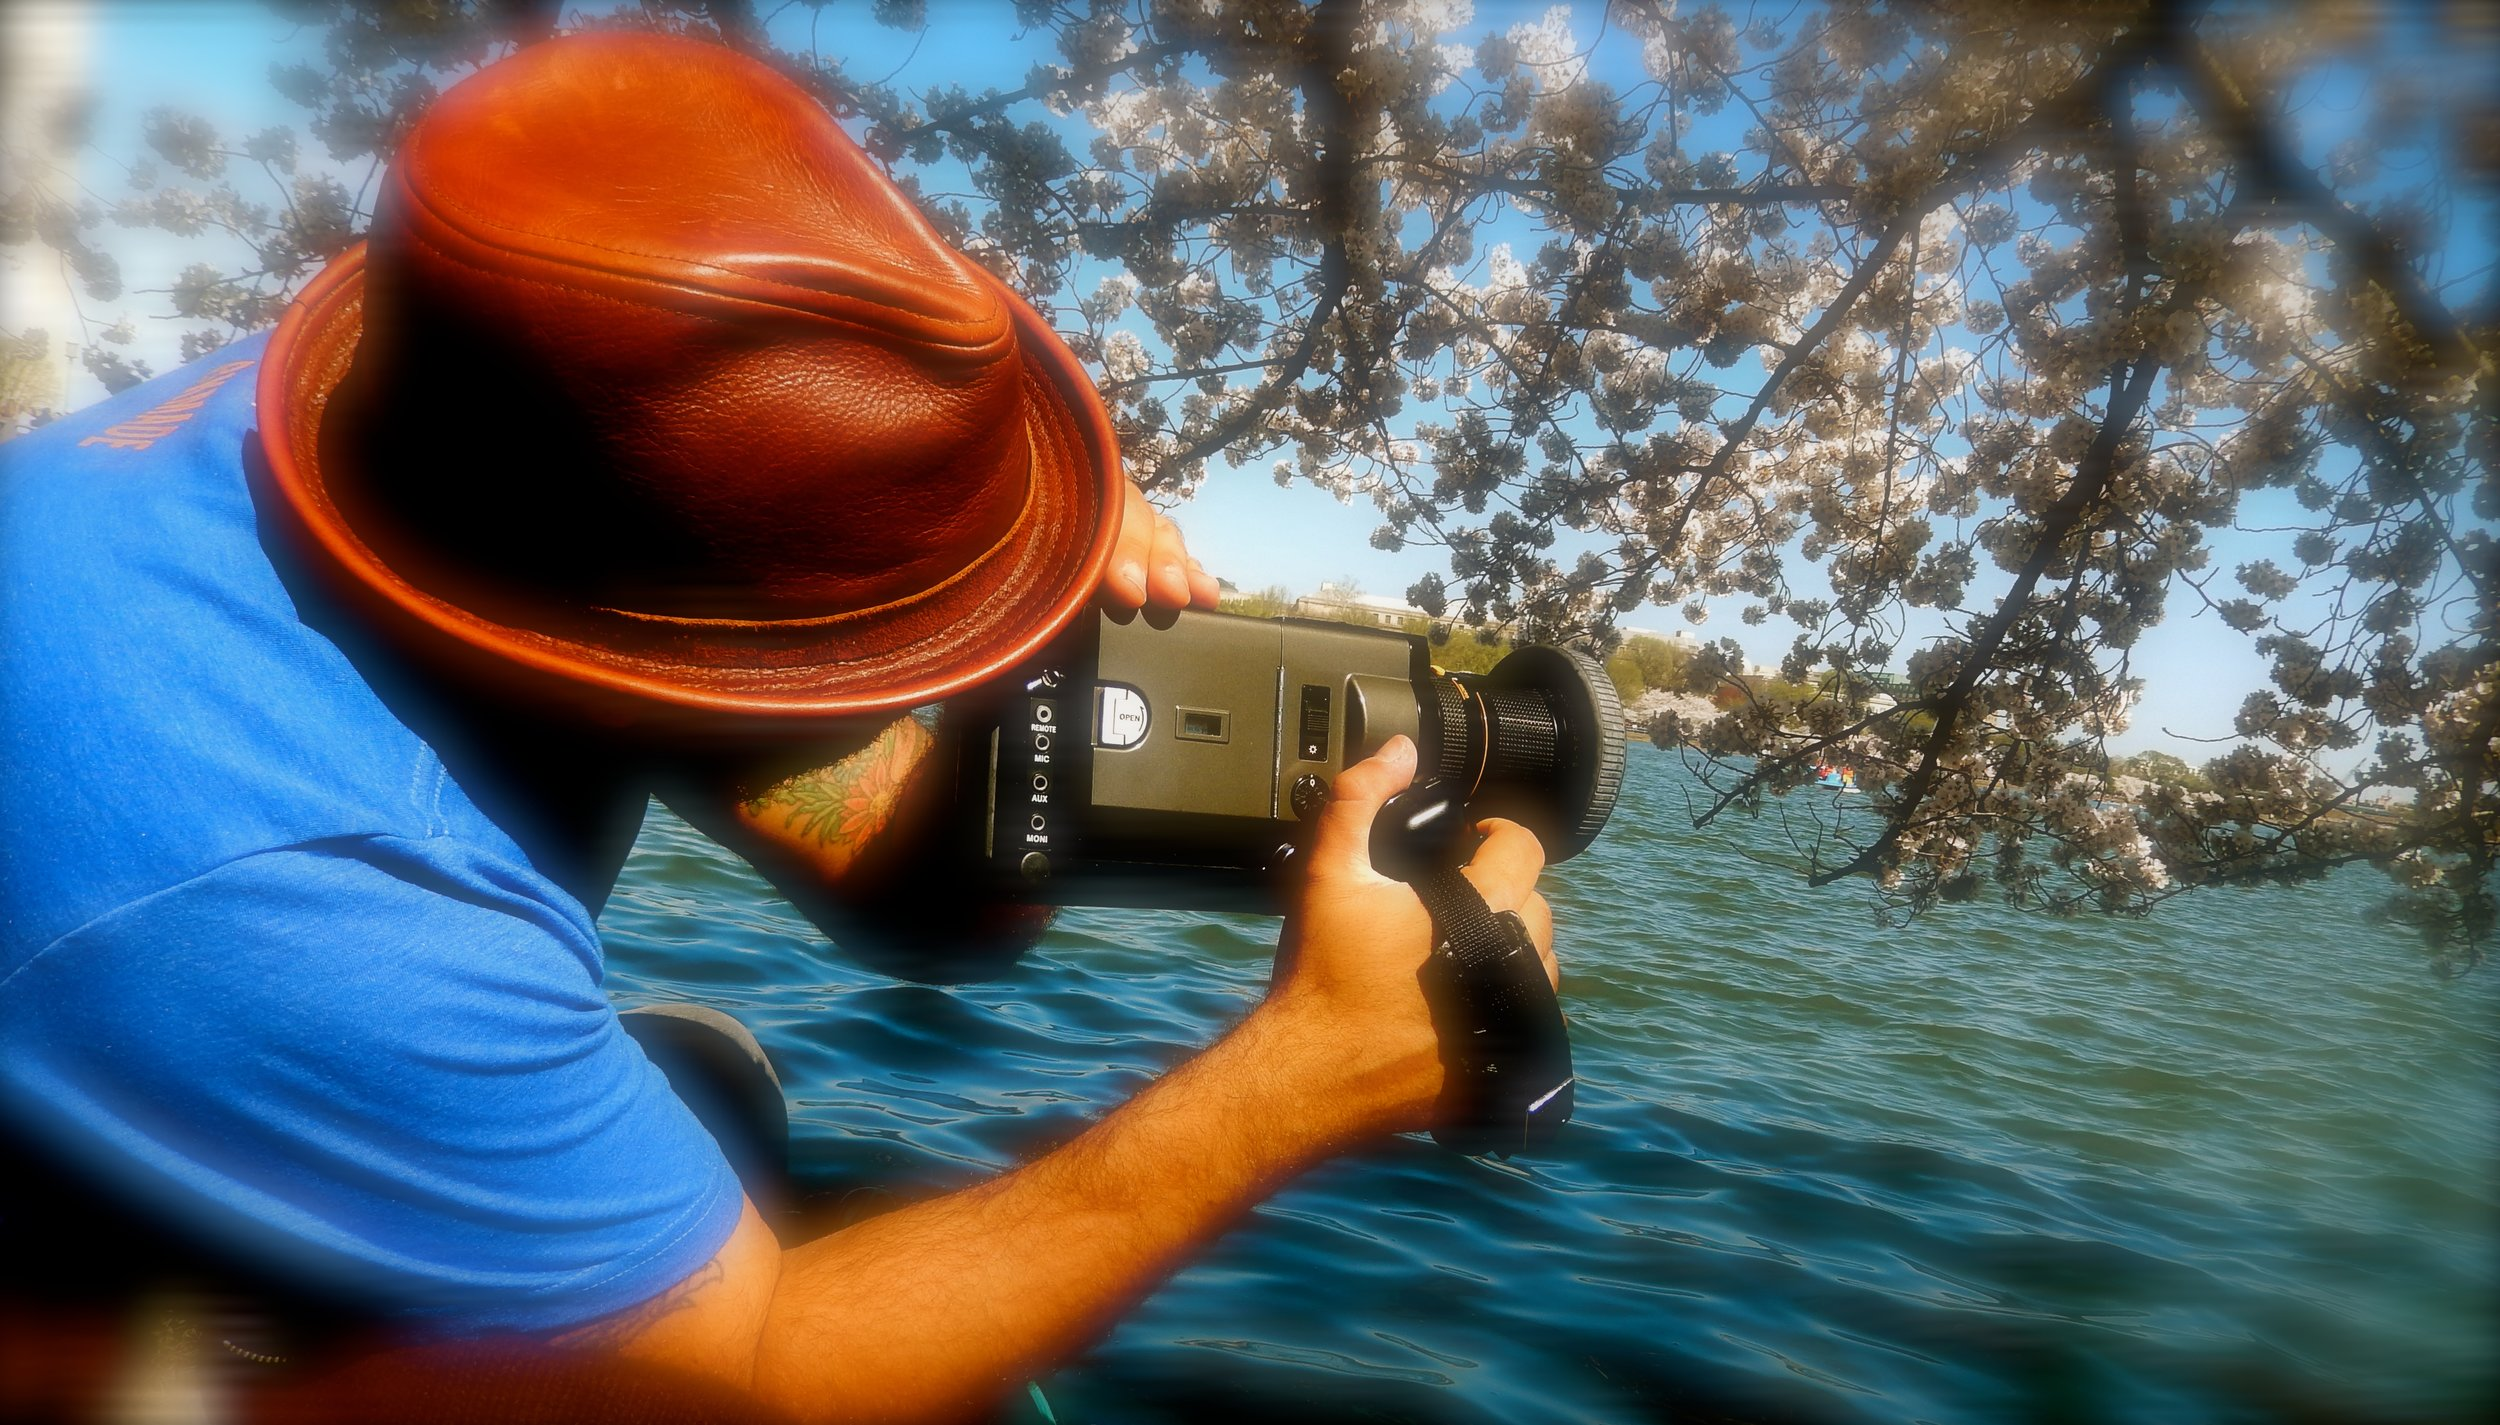 Cherry Blossoms in Super 8mm